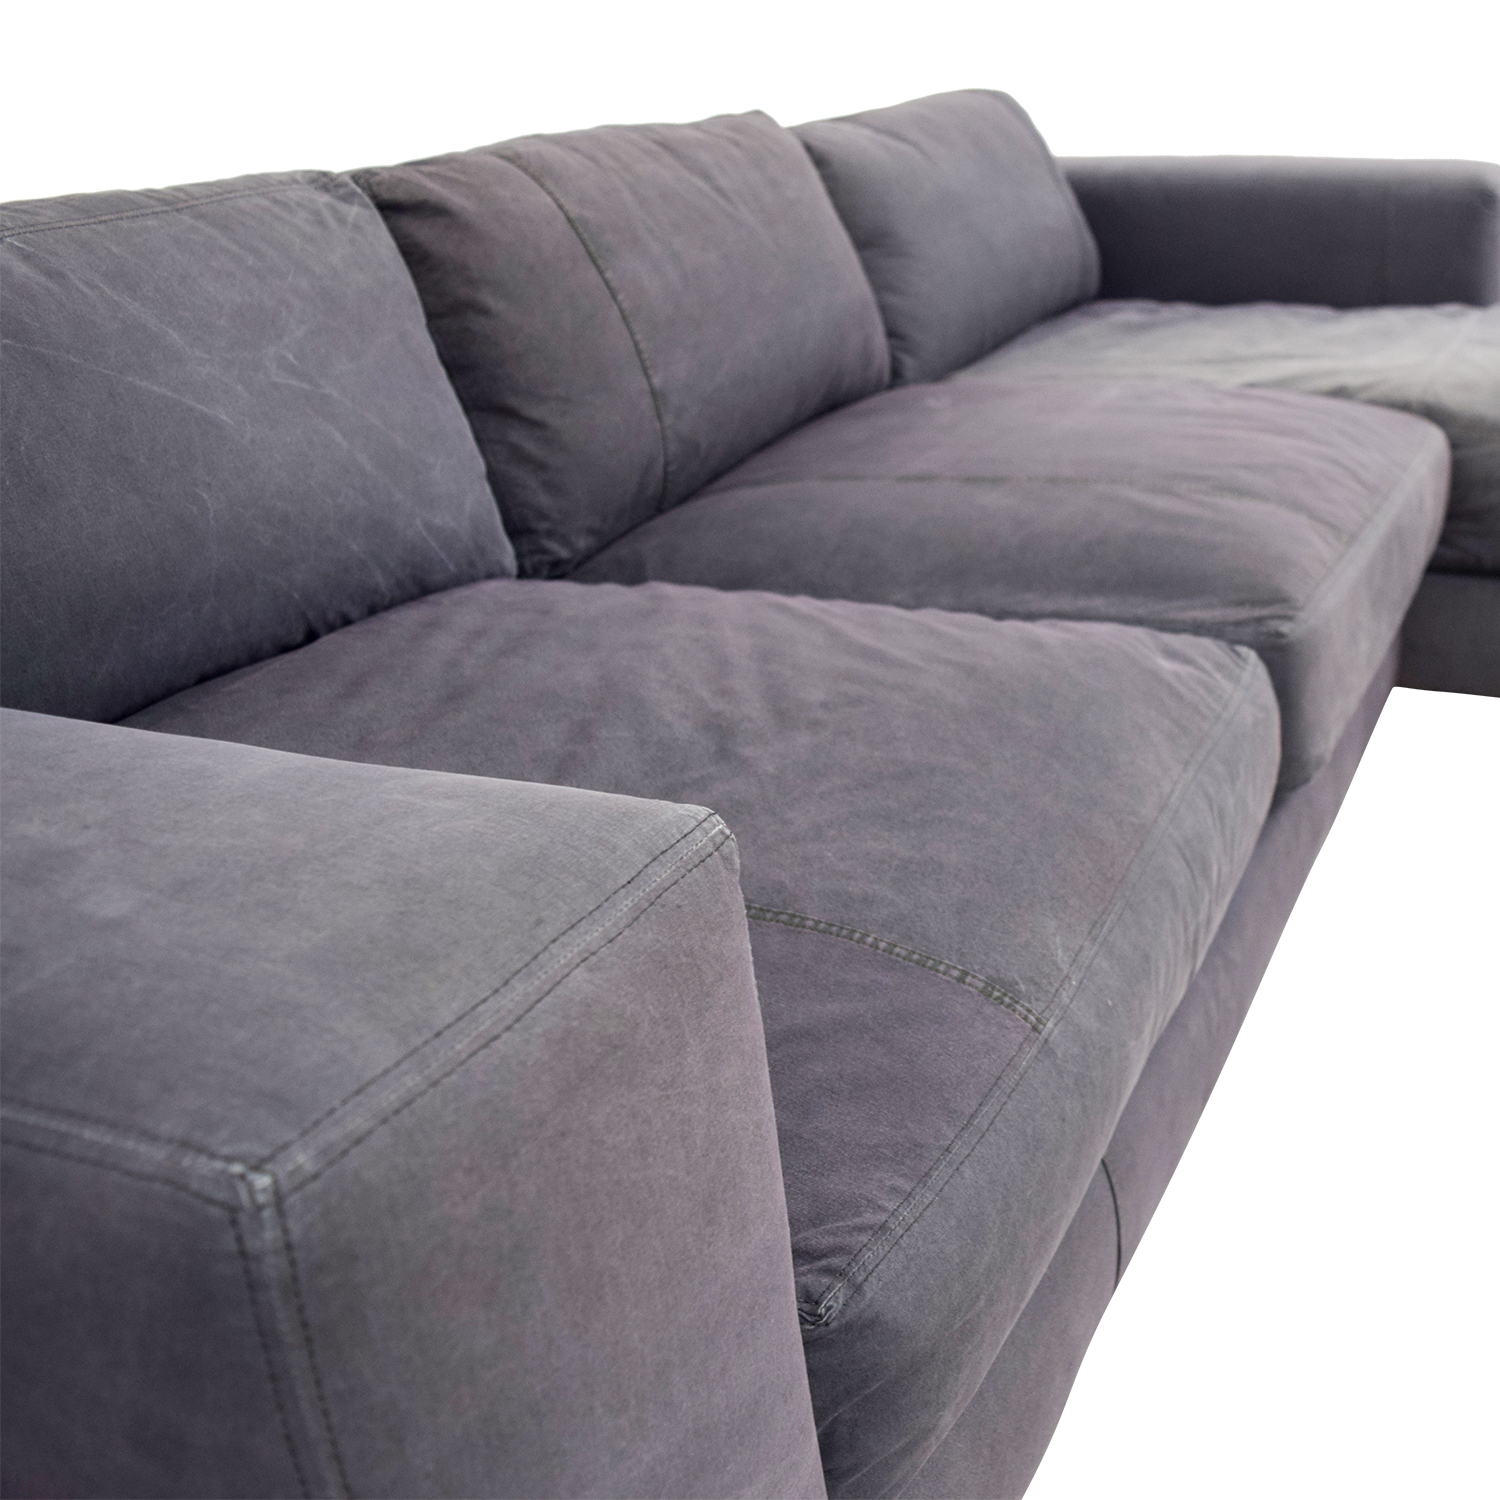 sectional grey sofa grey sectional sofas for less thesofa. Black Bedroom Furniture Sets. Home Design Ideas